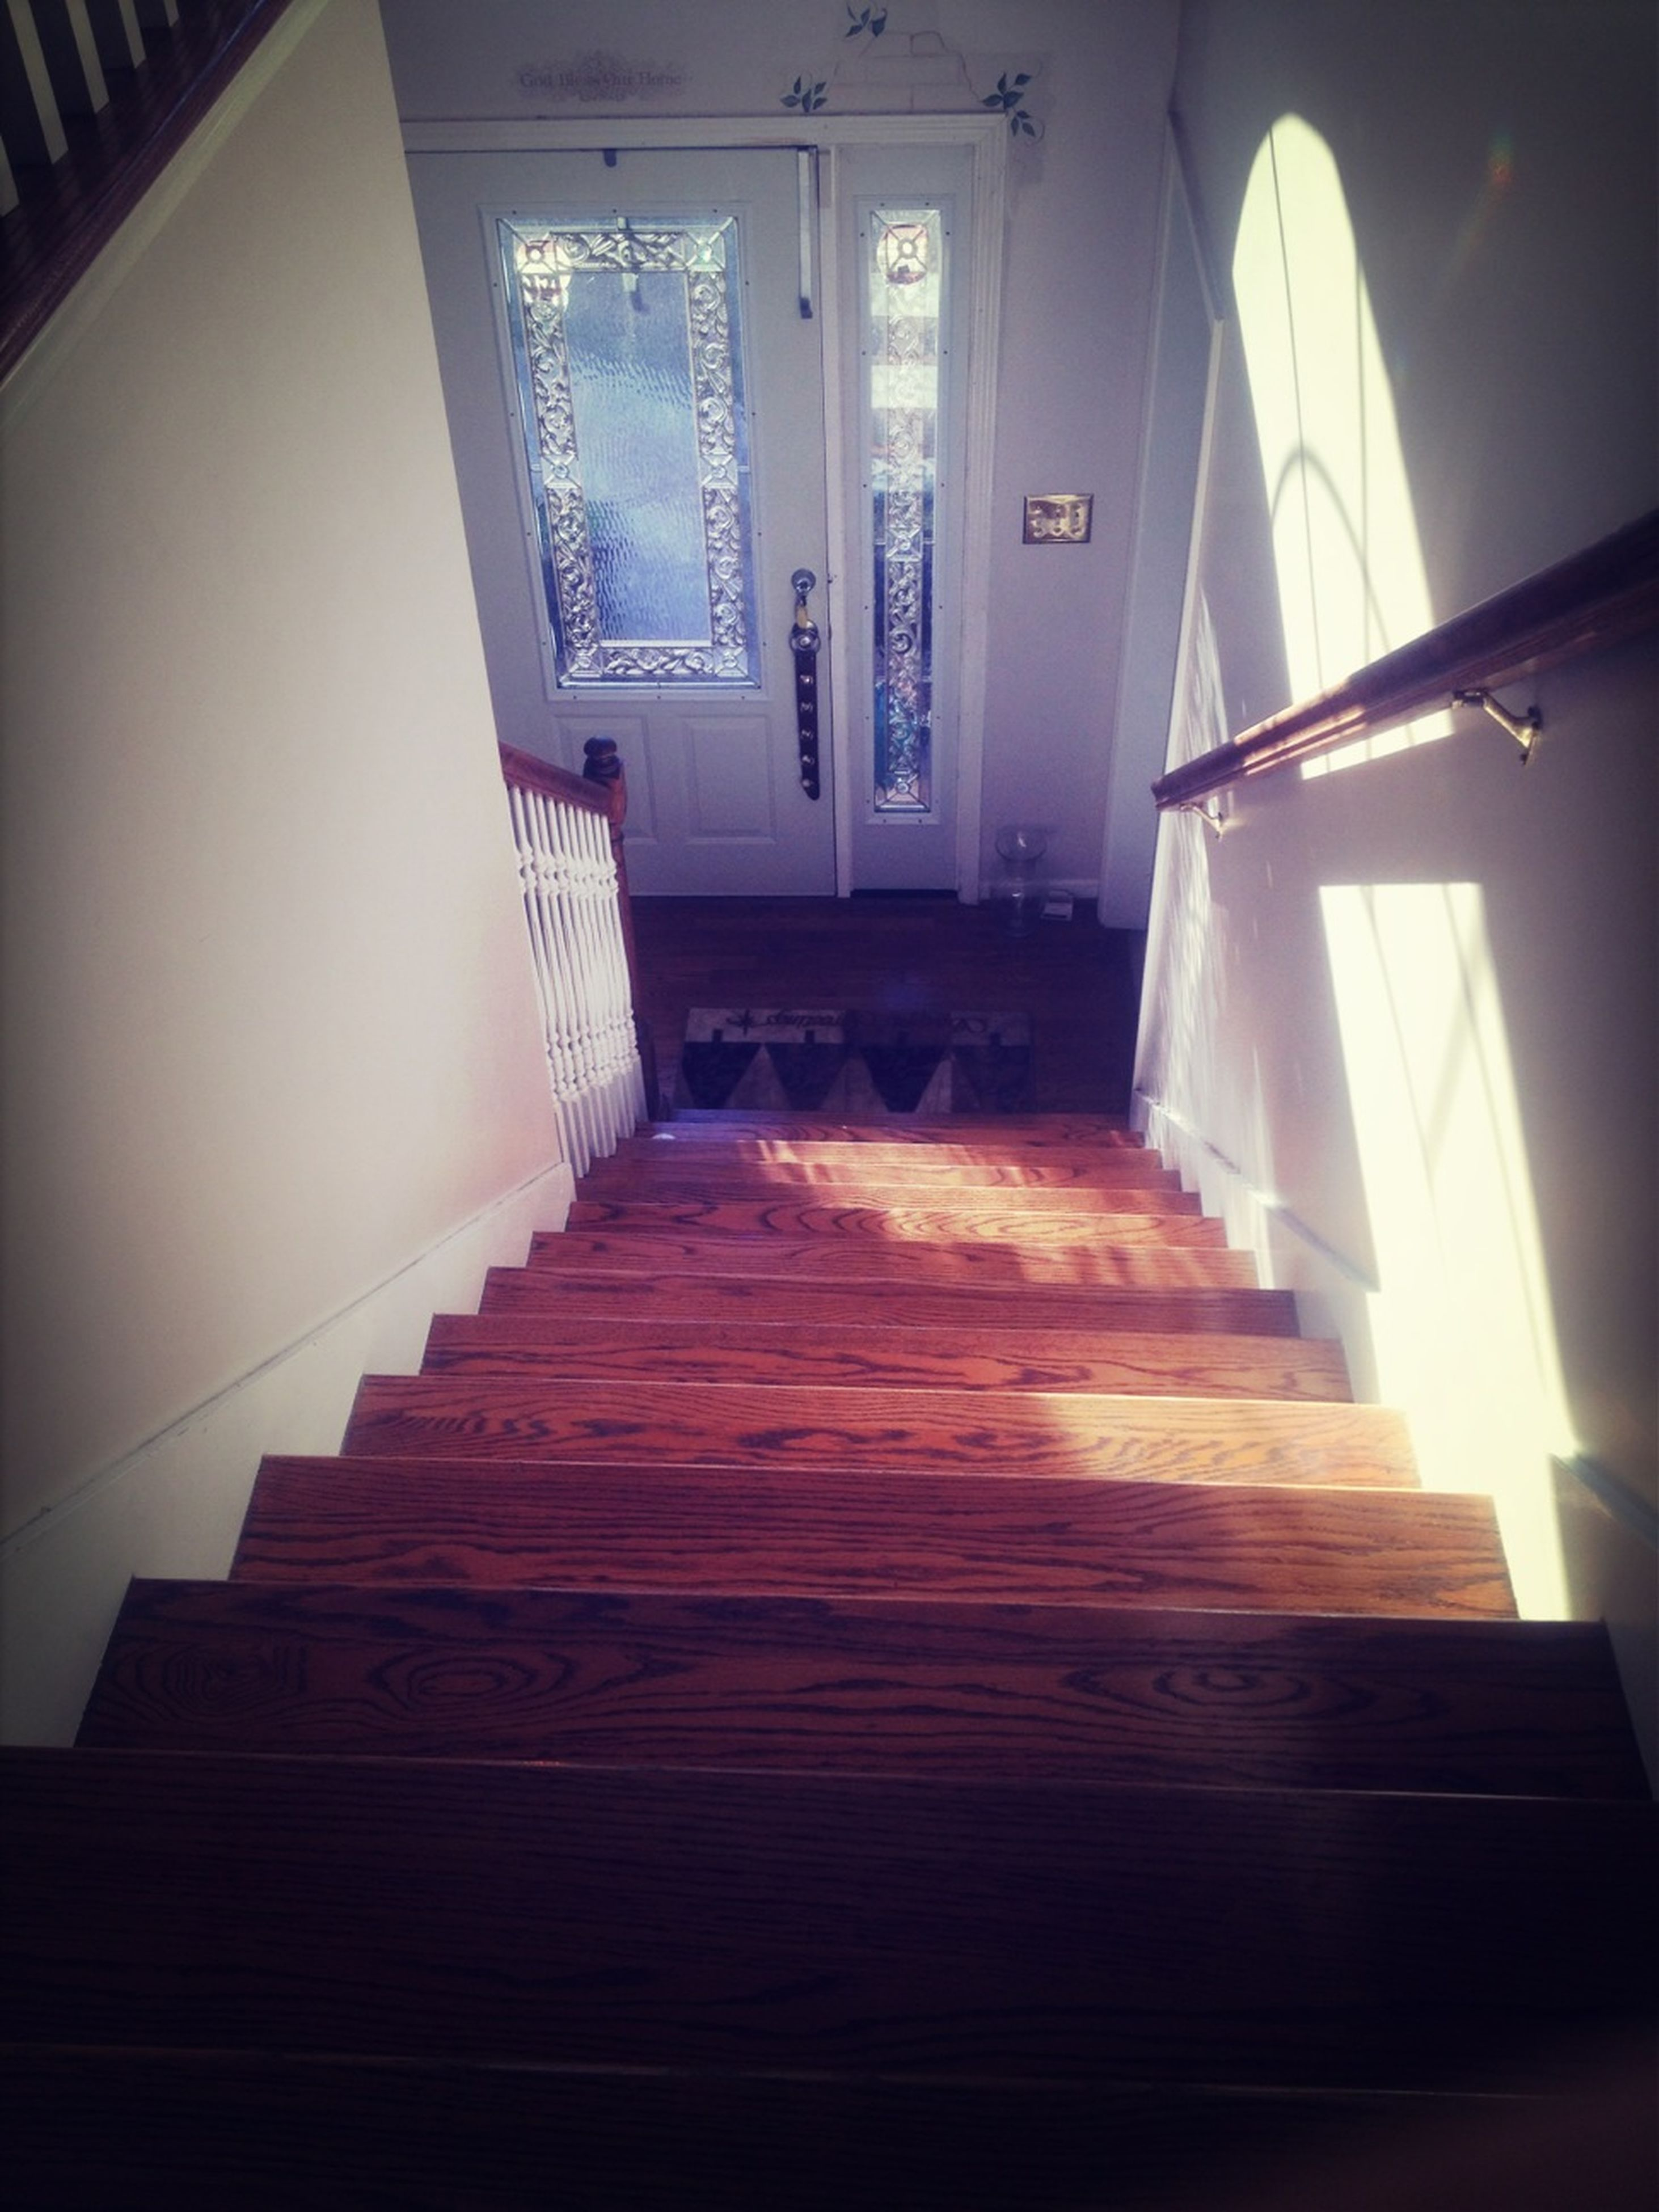 indoors, architecture, built structure, steps, staircase, house, home interior, steps and staircases, railing, window, absence, door, wood - material, empty, sunlight, corridor, no people, ceiling, low angle view, flooring